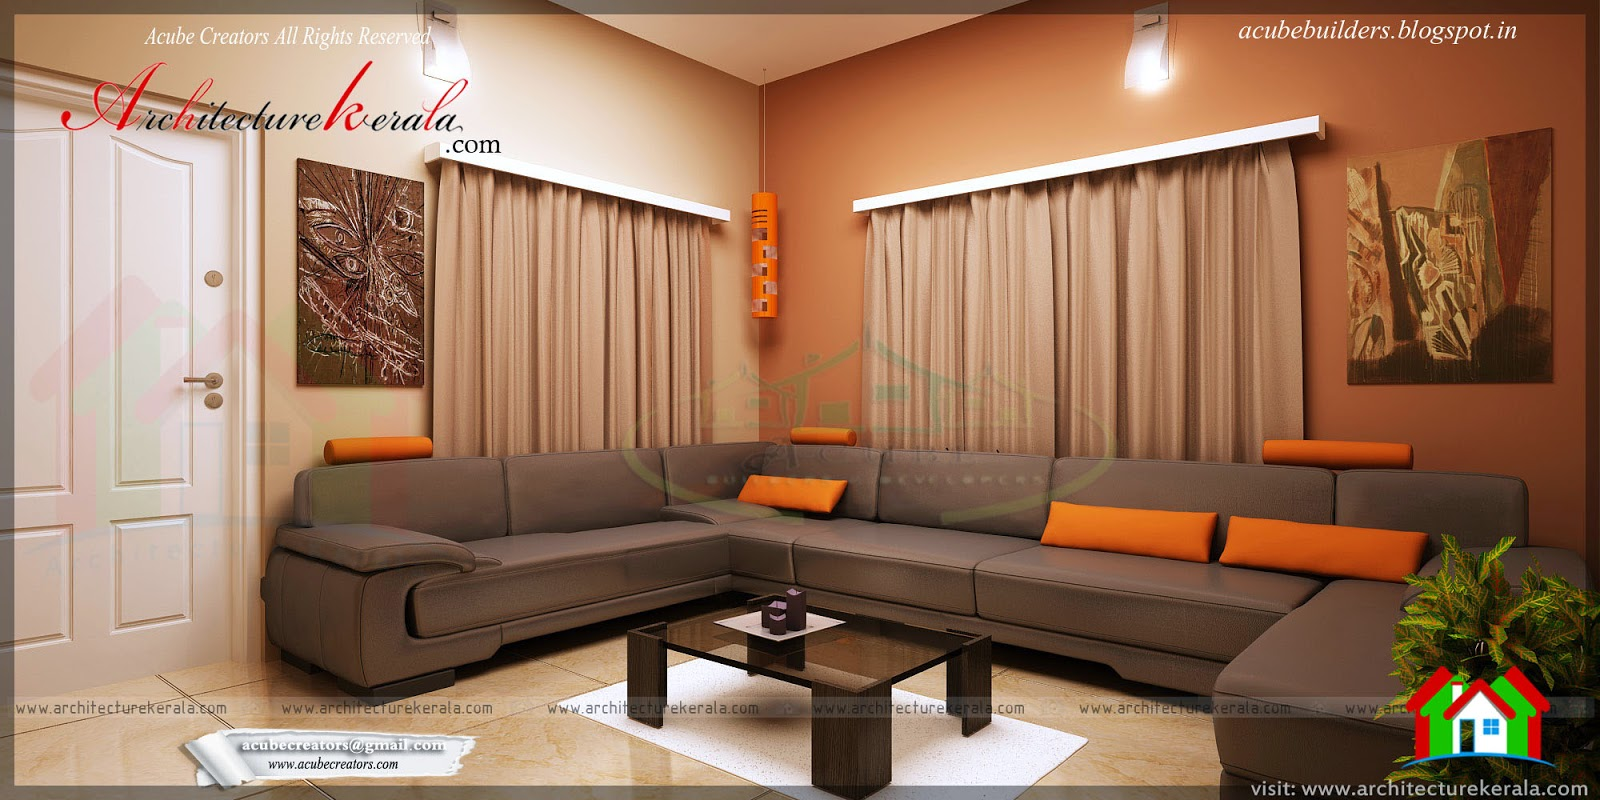 Drawing room interior design architecture kerala Drawing room interior design photos